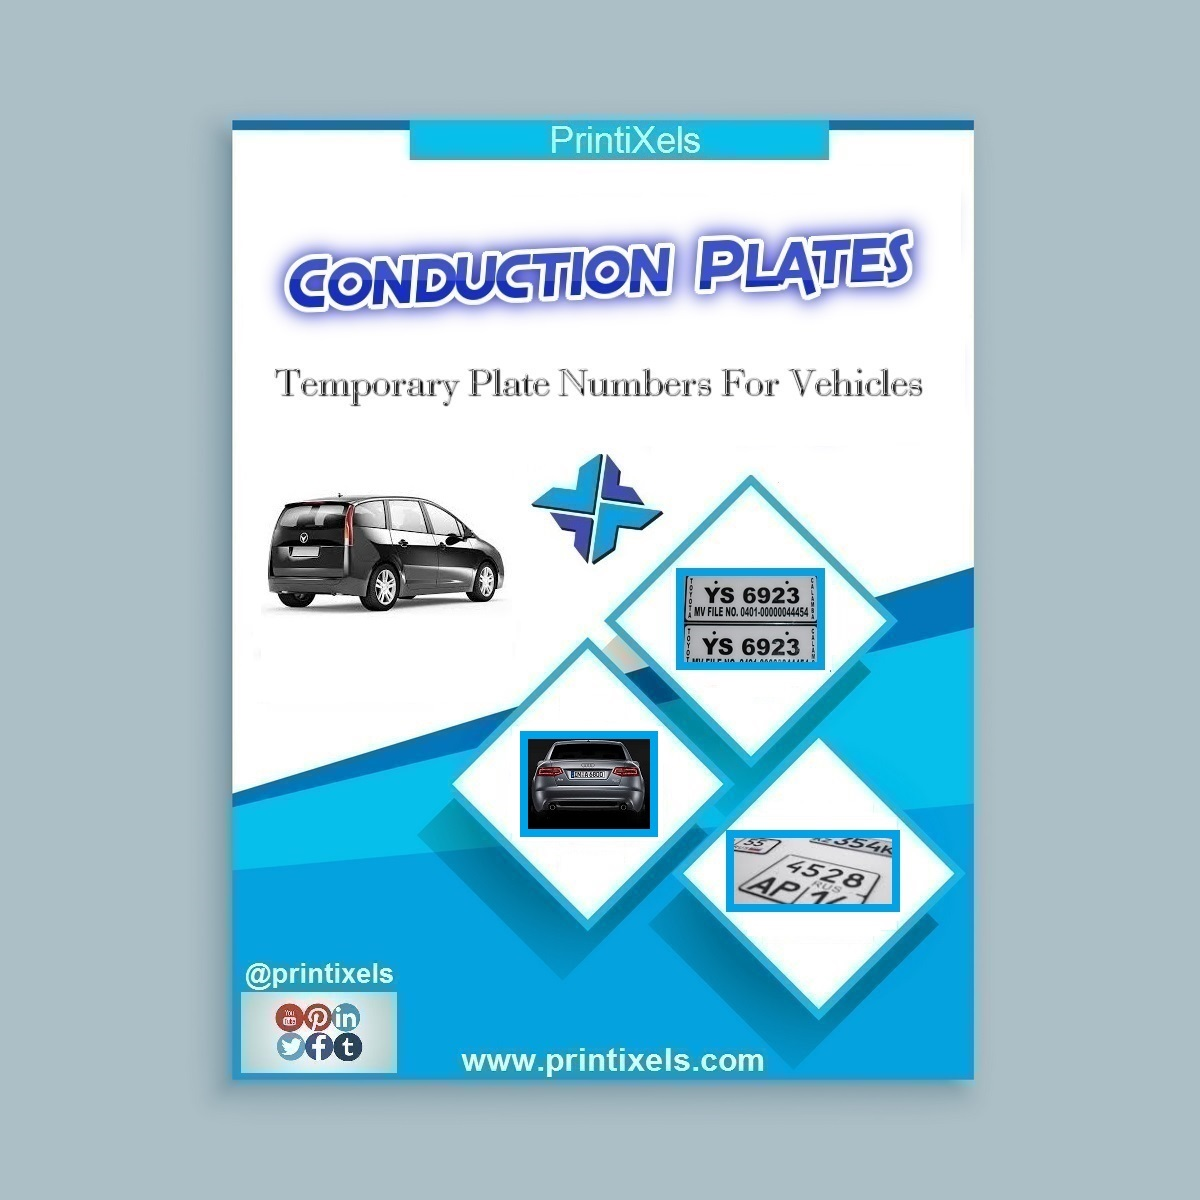 Conduction Plates, Temporary Plate Numbers For Vehicles